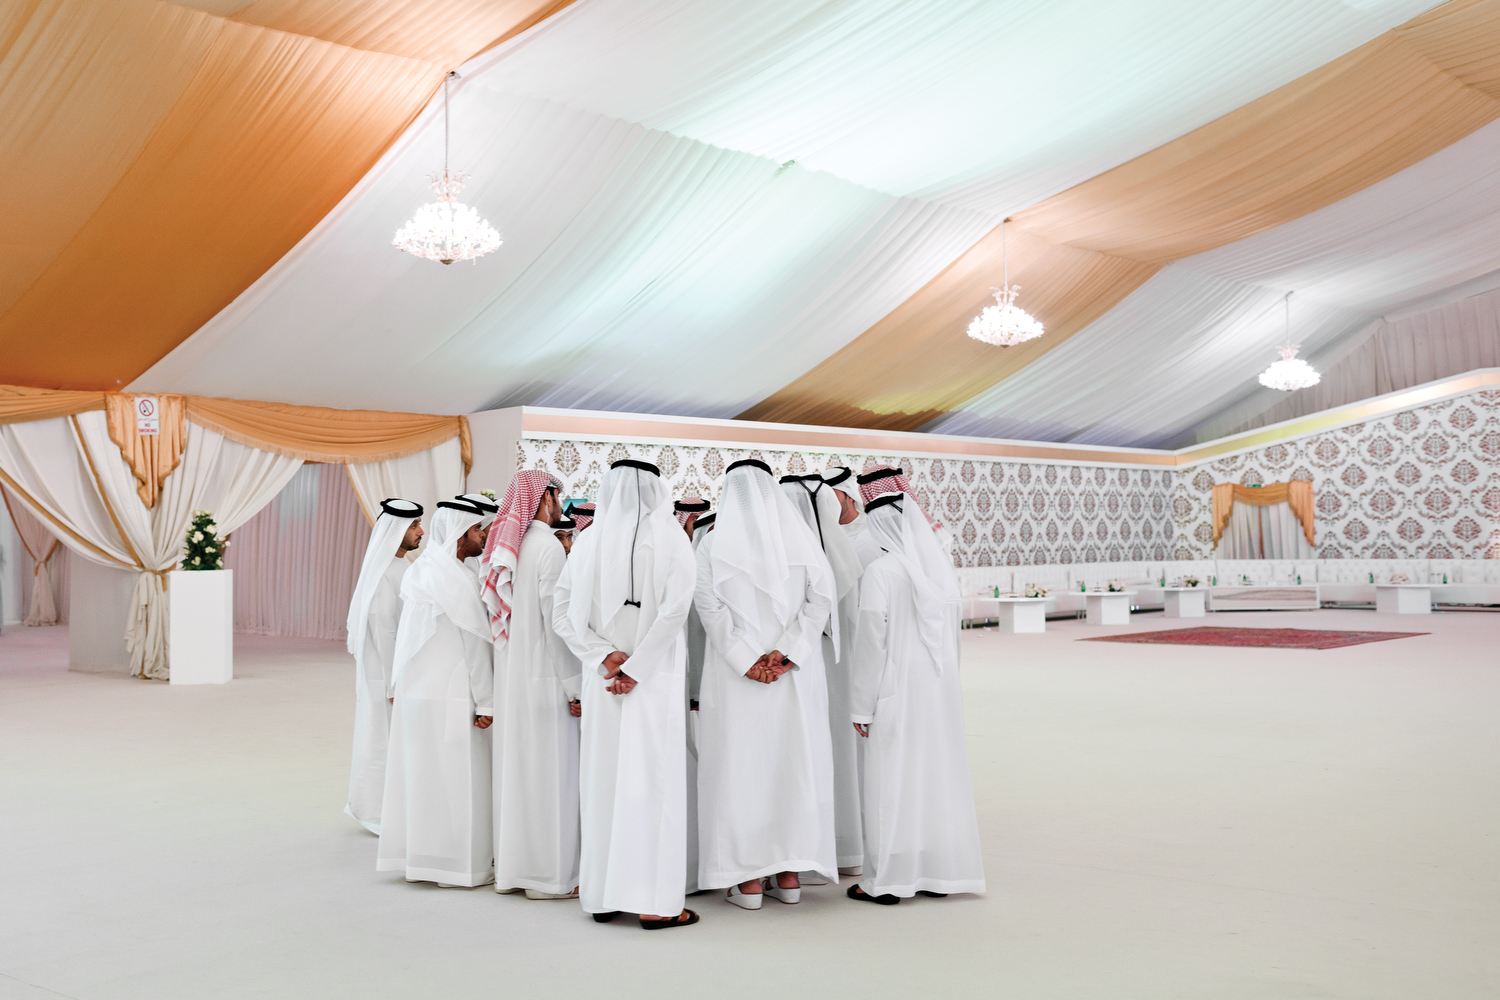 Security personnel receive a briefing during a wedding of a member of the royal family in Umm Al Quwain, an Emirate in northern UAE.